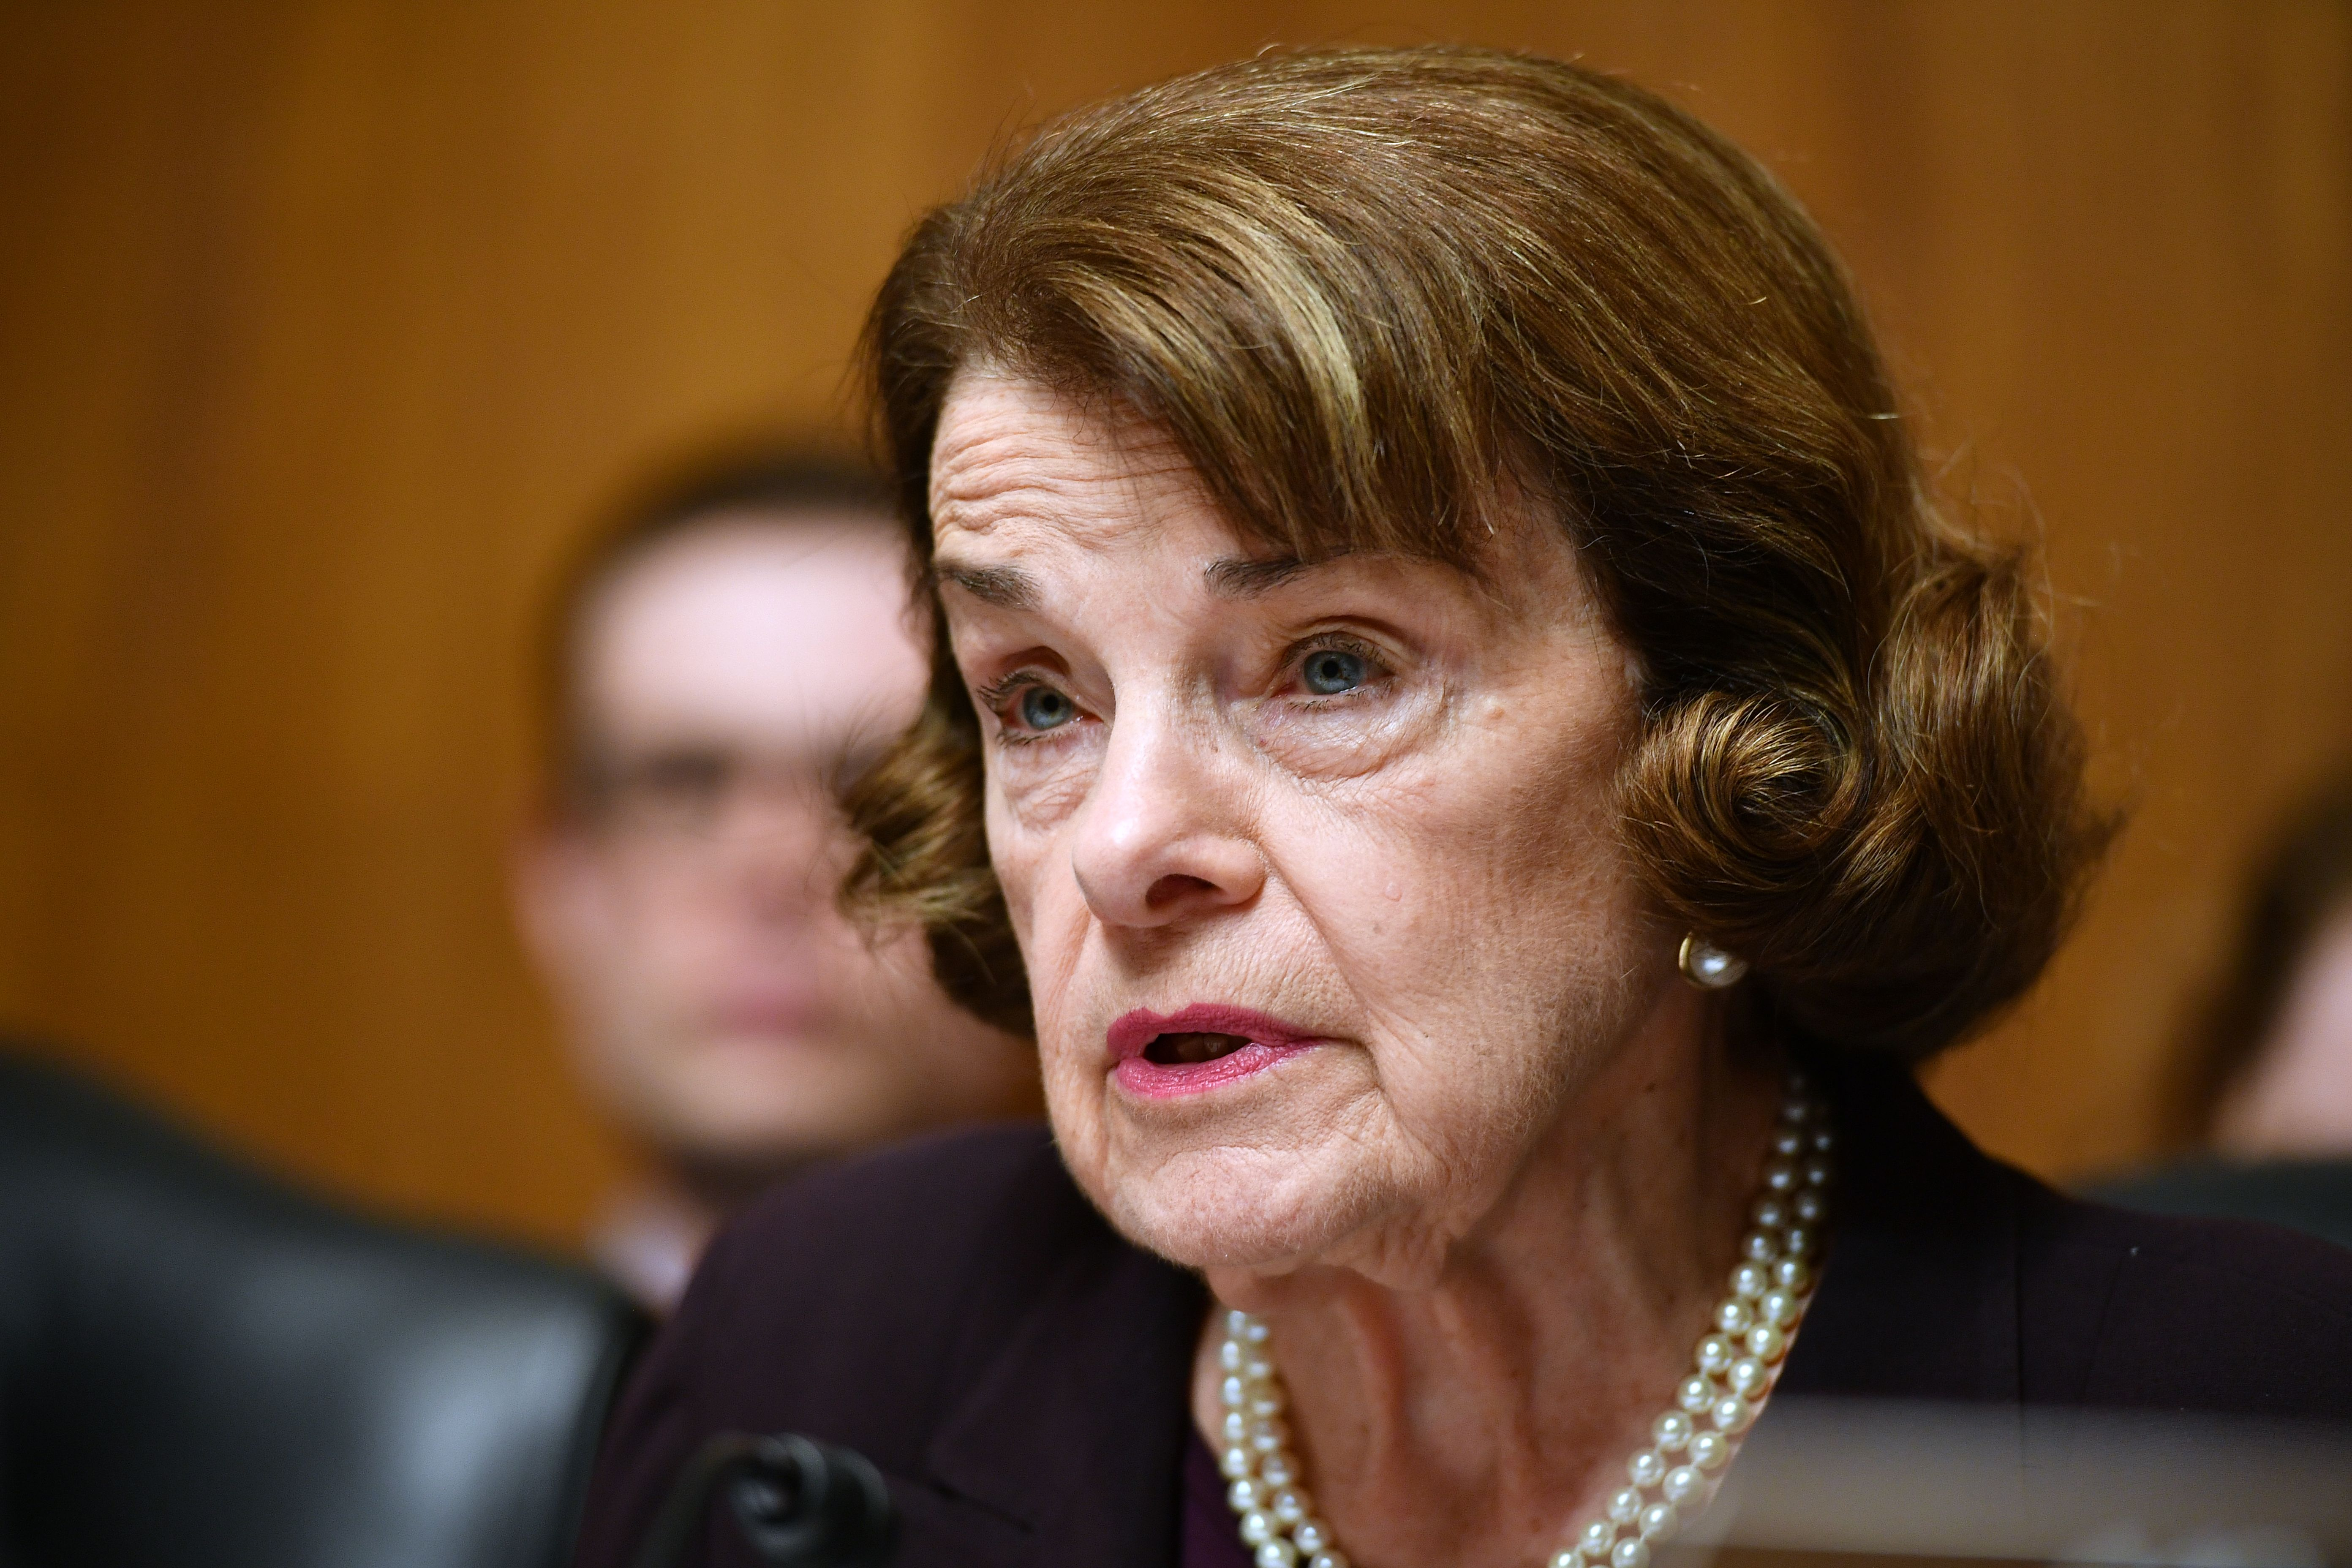 US Senator Dianne Feinstein speaks as US Attorney General William Barr prepares to testify before the Senate Judiciary Committee on May 1,2019. (MANDEL NGAN/AFP via Getty Images)